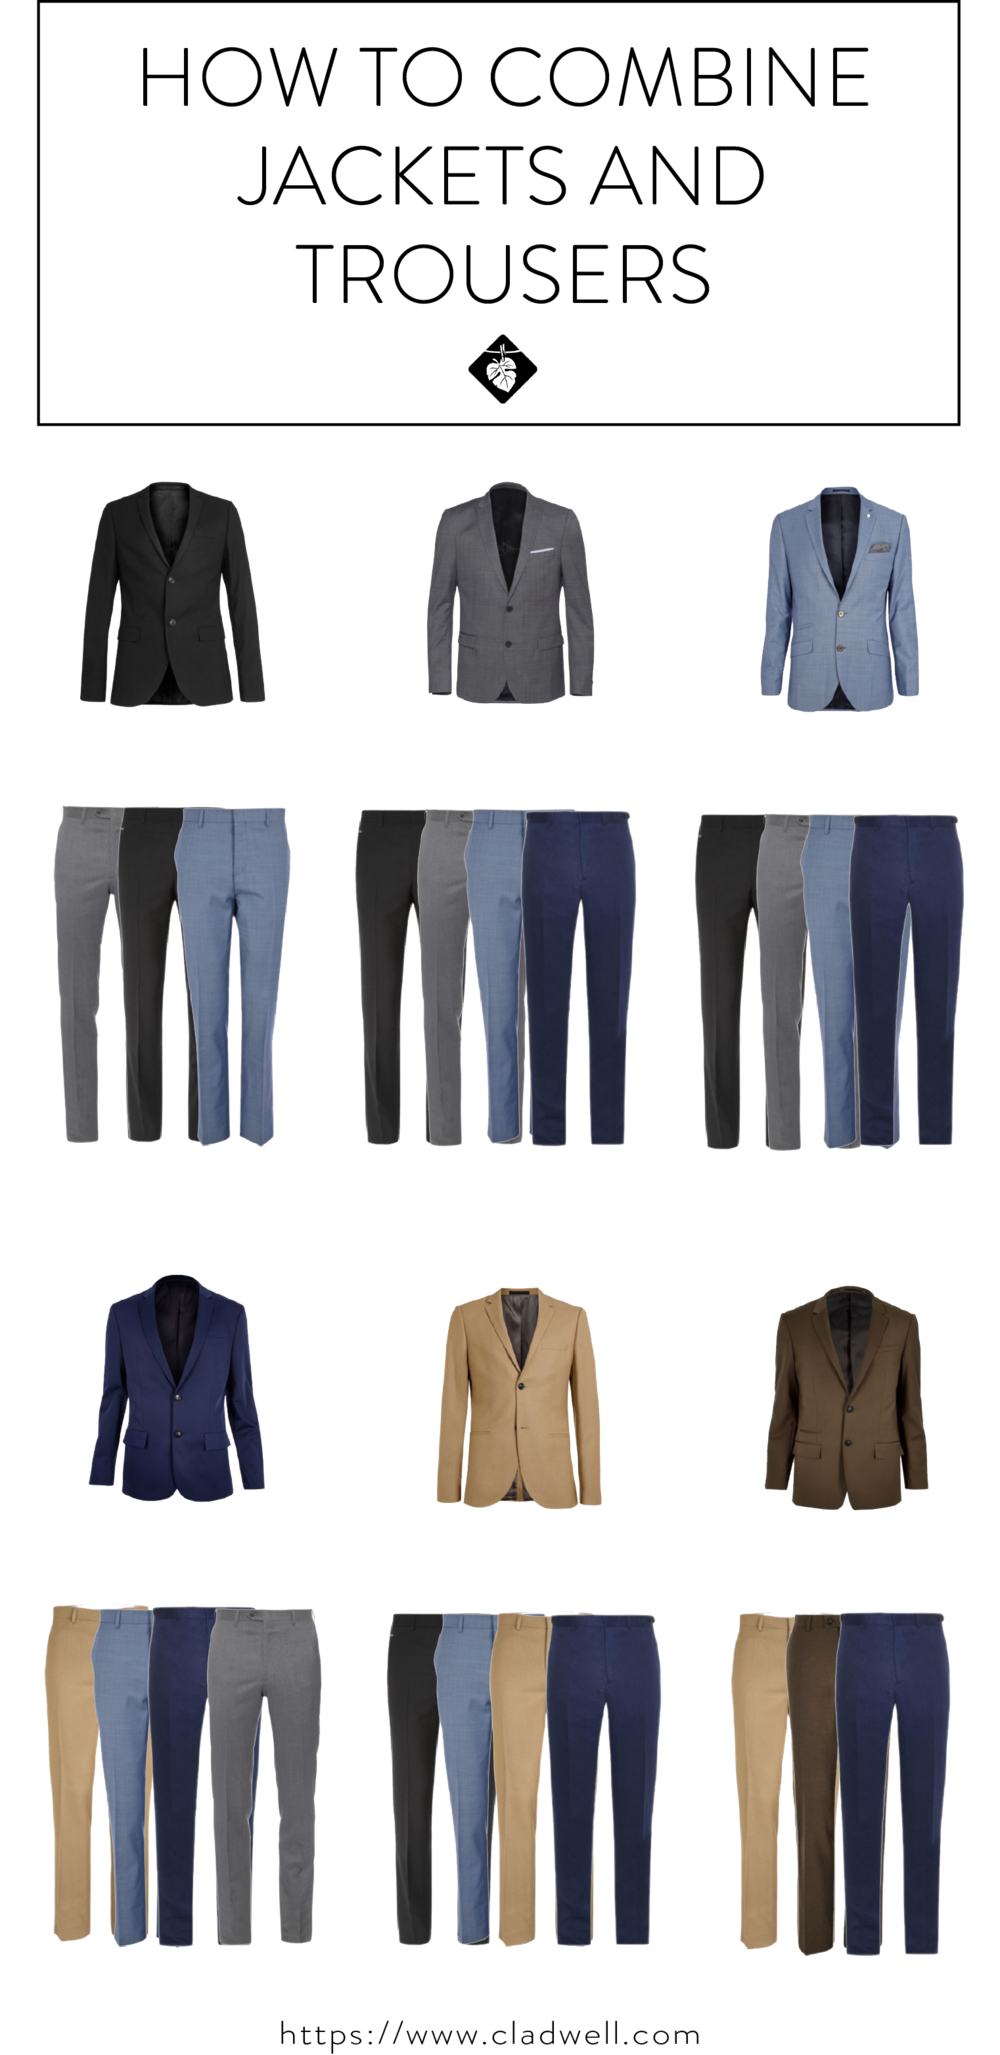 How To Combine Jackets And Trousers For Your Capsule Cladwell